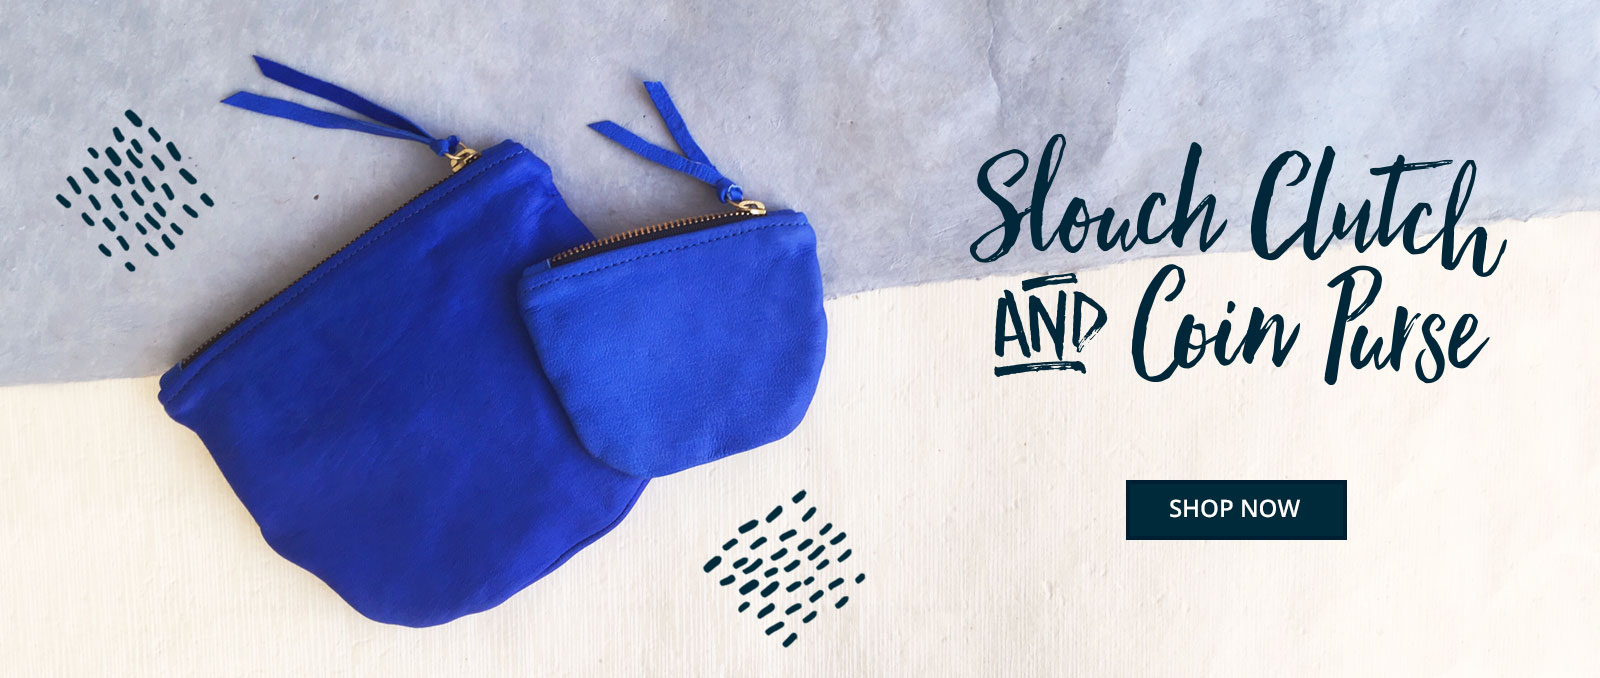 Leather Clutch Bags   Cobalt Clutch Bag   Sustainable Fashion